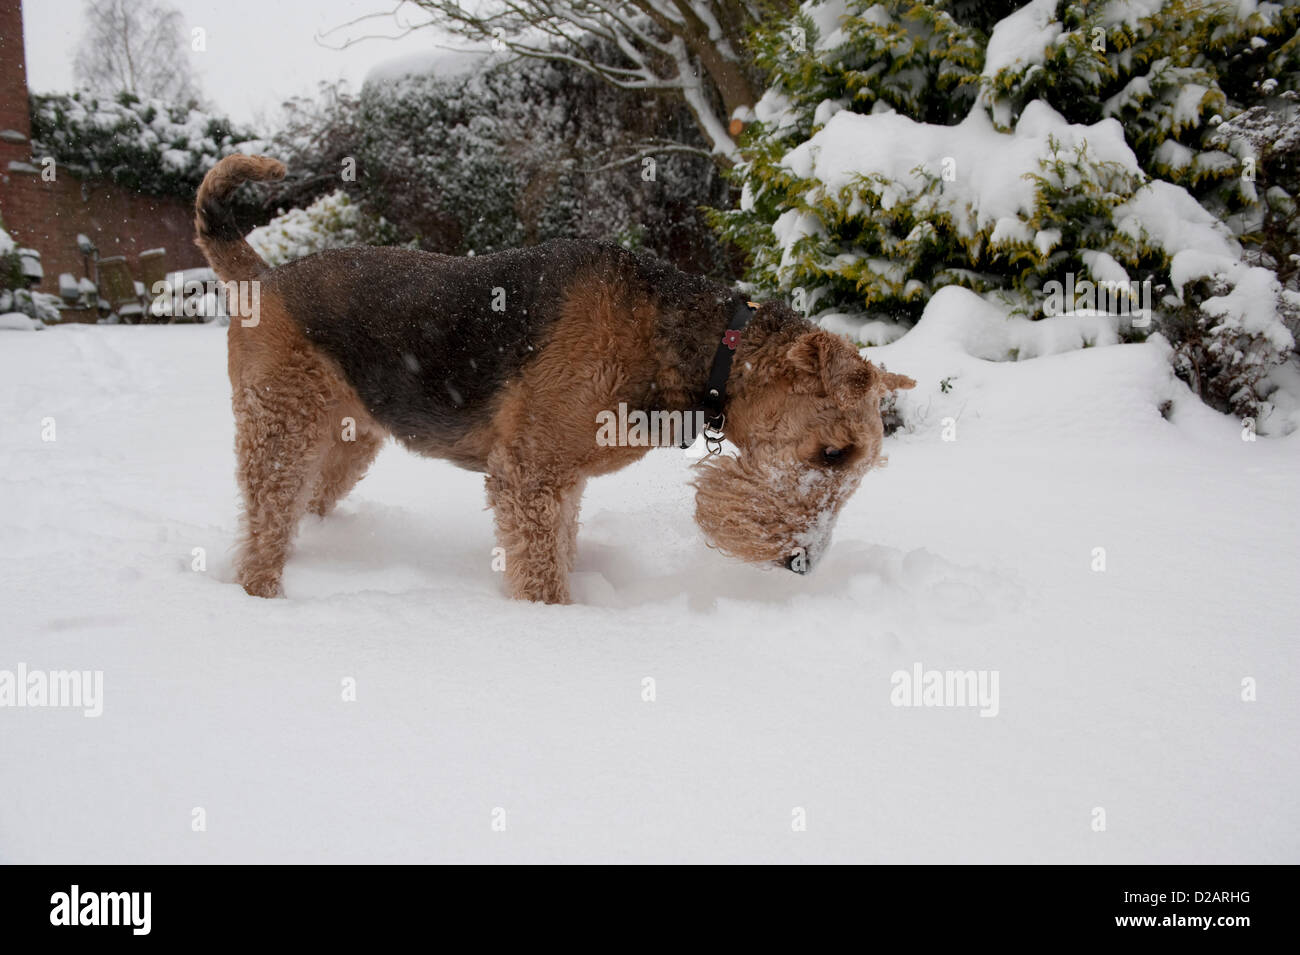 LICHFIELD, STAFFORDSHIRE, UK. 18TH JANUARY 2013. An Airedale Terrier called Daisy plays in the deep snow, sniffing - Stock Image